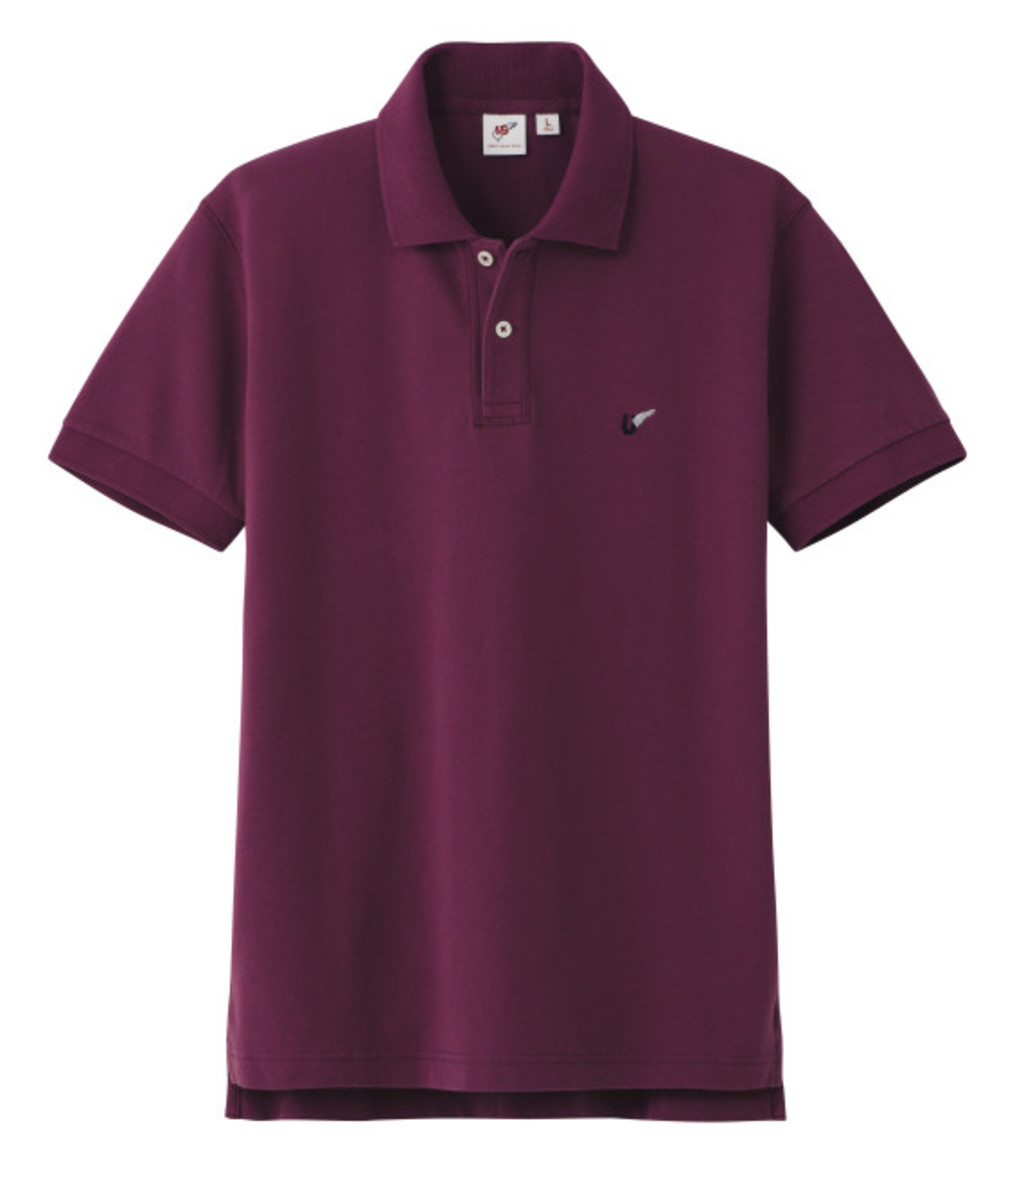 michael-bastian-x-uniqlo-mens-polo-shirt-collection-2013-27